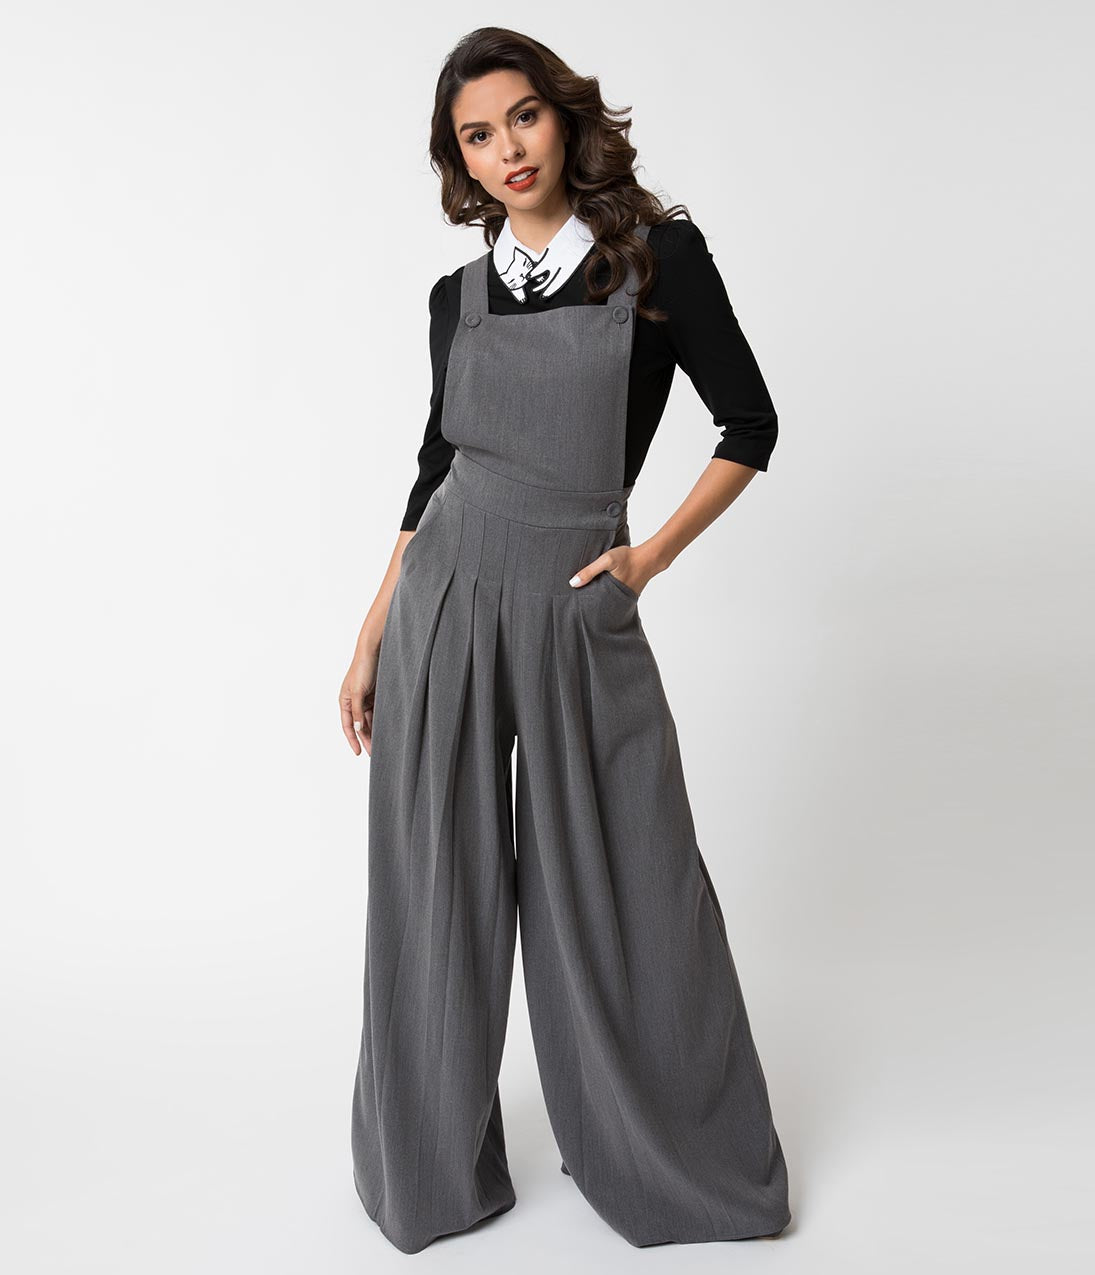 1940s Swing Pants & Sailor Trousers- Wide Leg, High Waist Miss Candy Floss 1940S Grey Tailored Wide Leg Nina Dungarees $74.00 AT vintagedancer.com